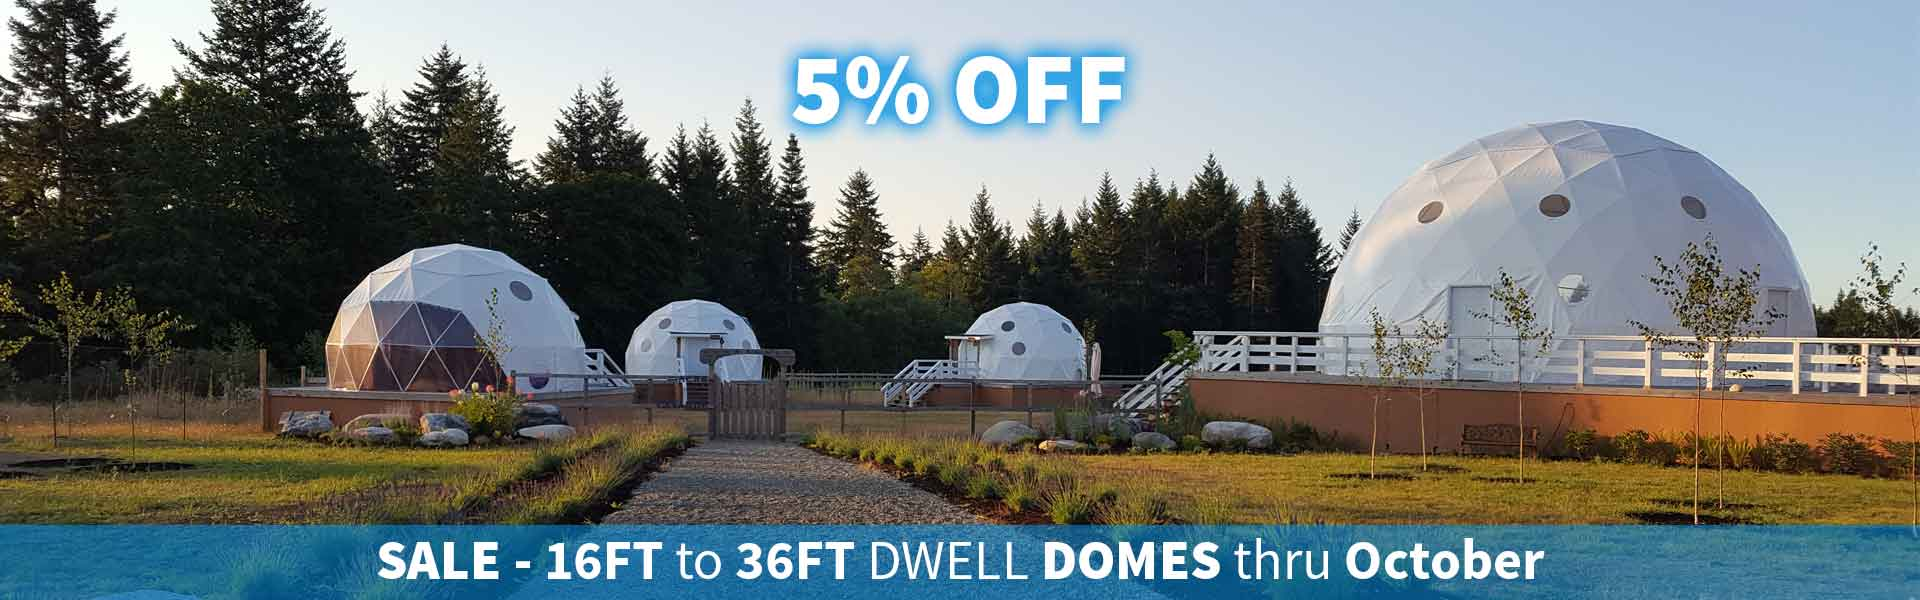 Dwell Domes on Sale